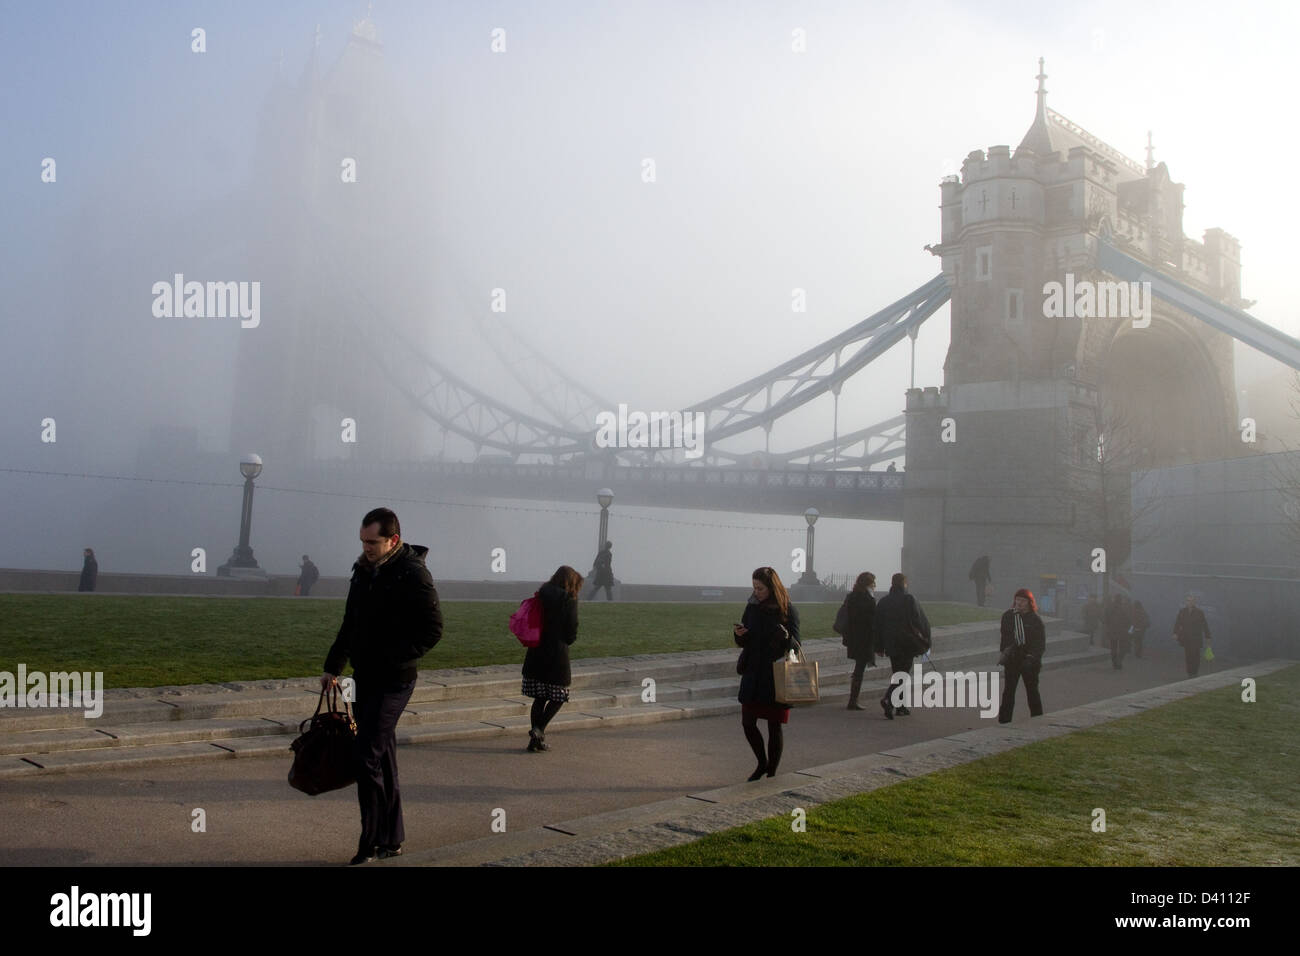 A picture shows commuters walking by Tower bridge through heavy fog and low cloud in London. - Stock Image